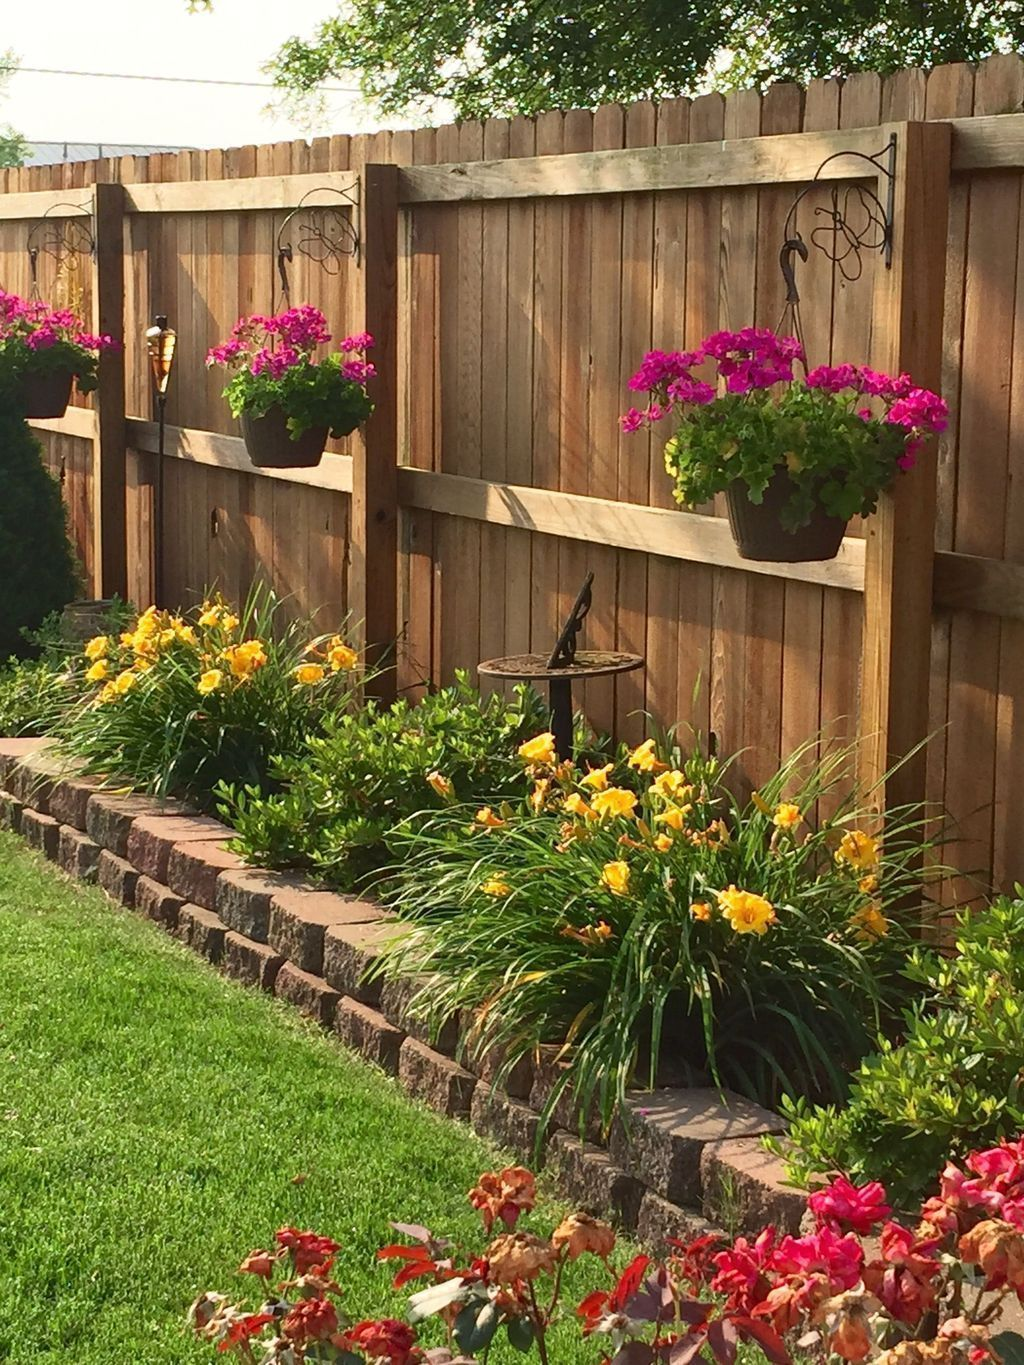 Small Garden Design Ideas Are Not Simple To Find The Small Garden Design Is U Small Front Yard Landscaping Backyard Garden Design Small Backyard Landscaping Backyard garden and design ideas